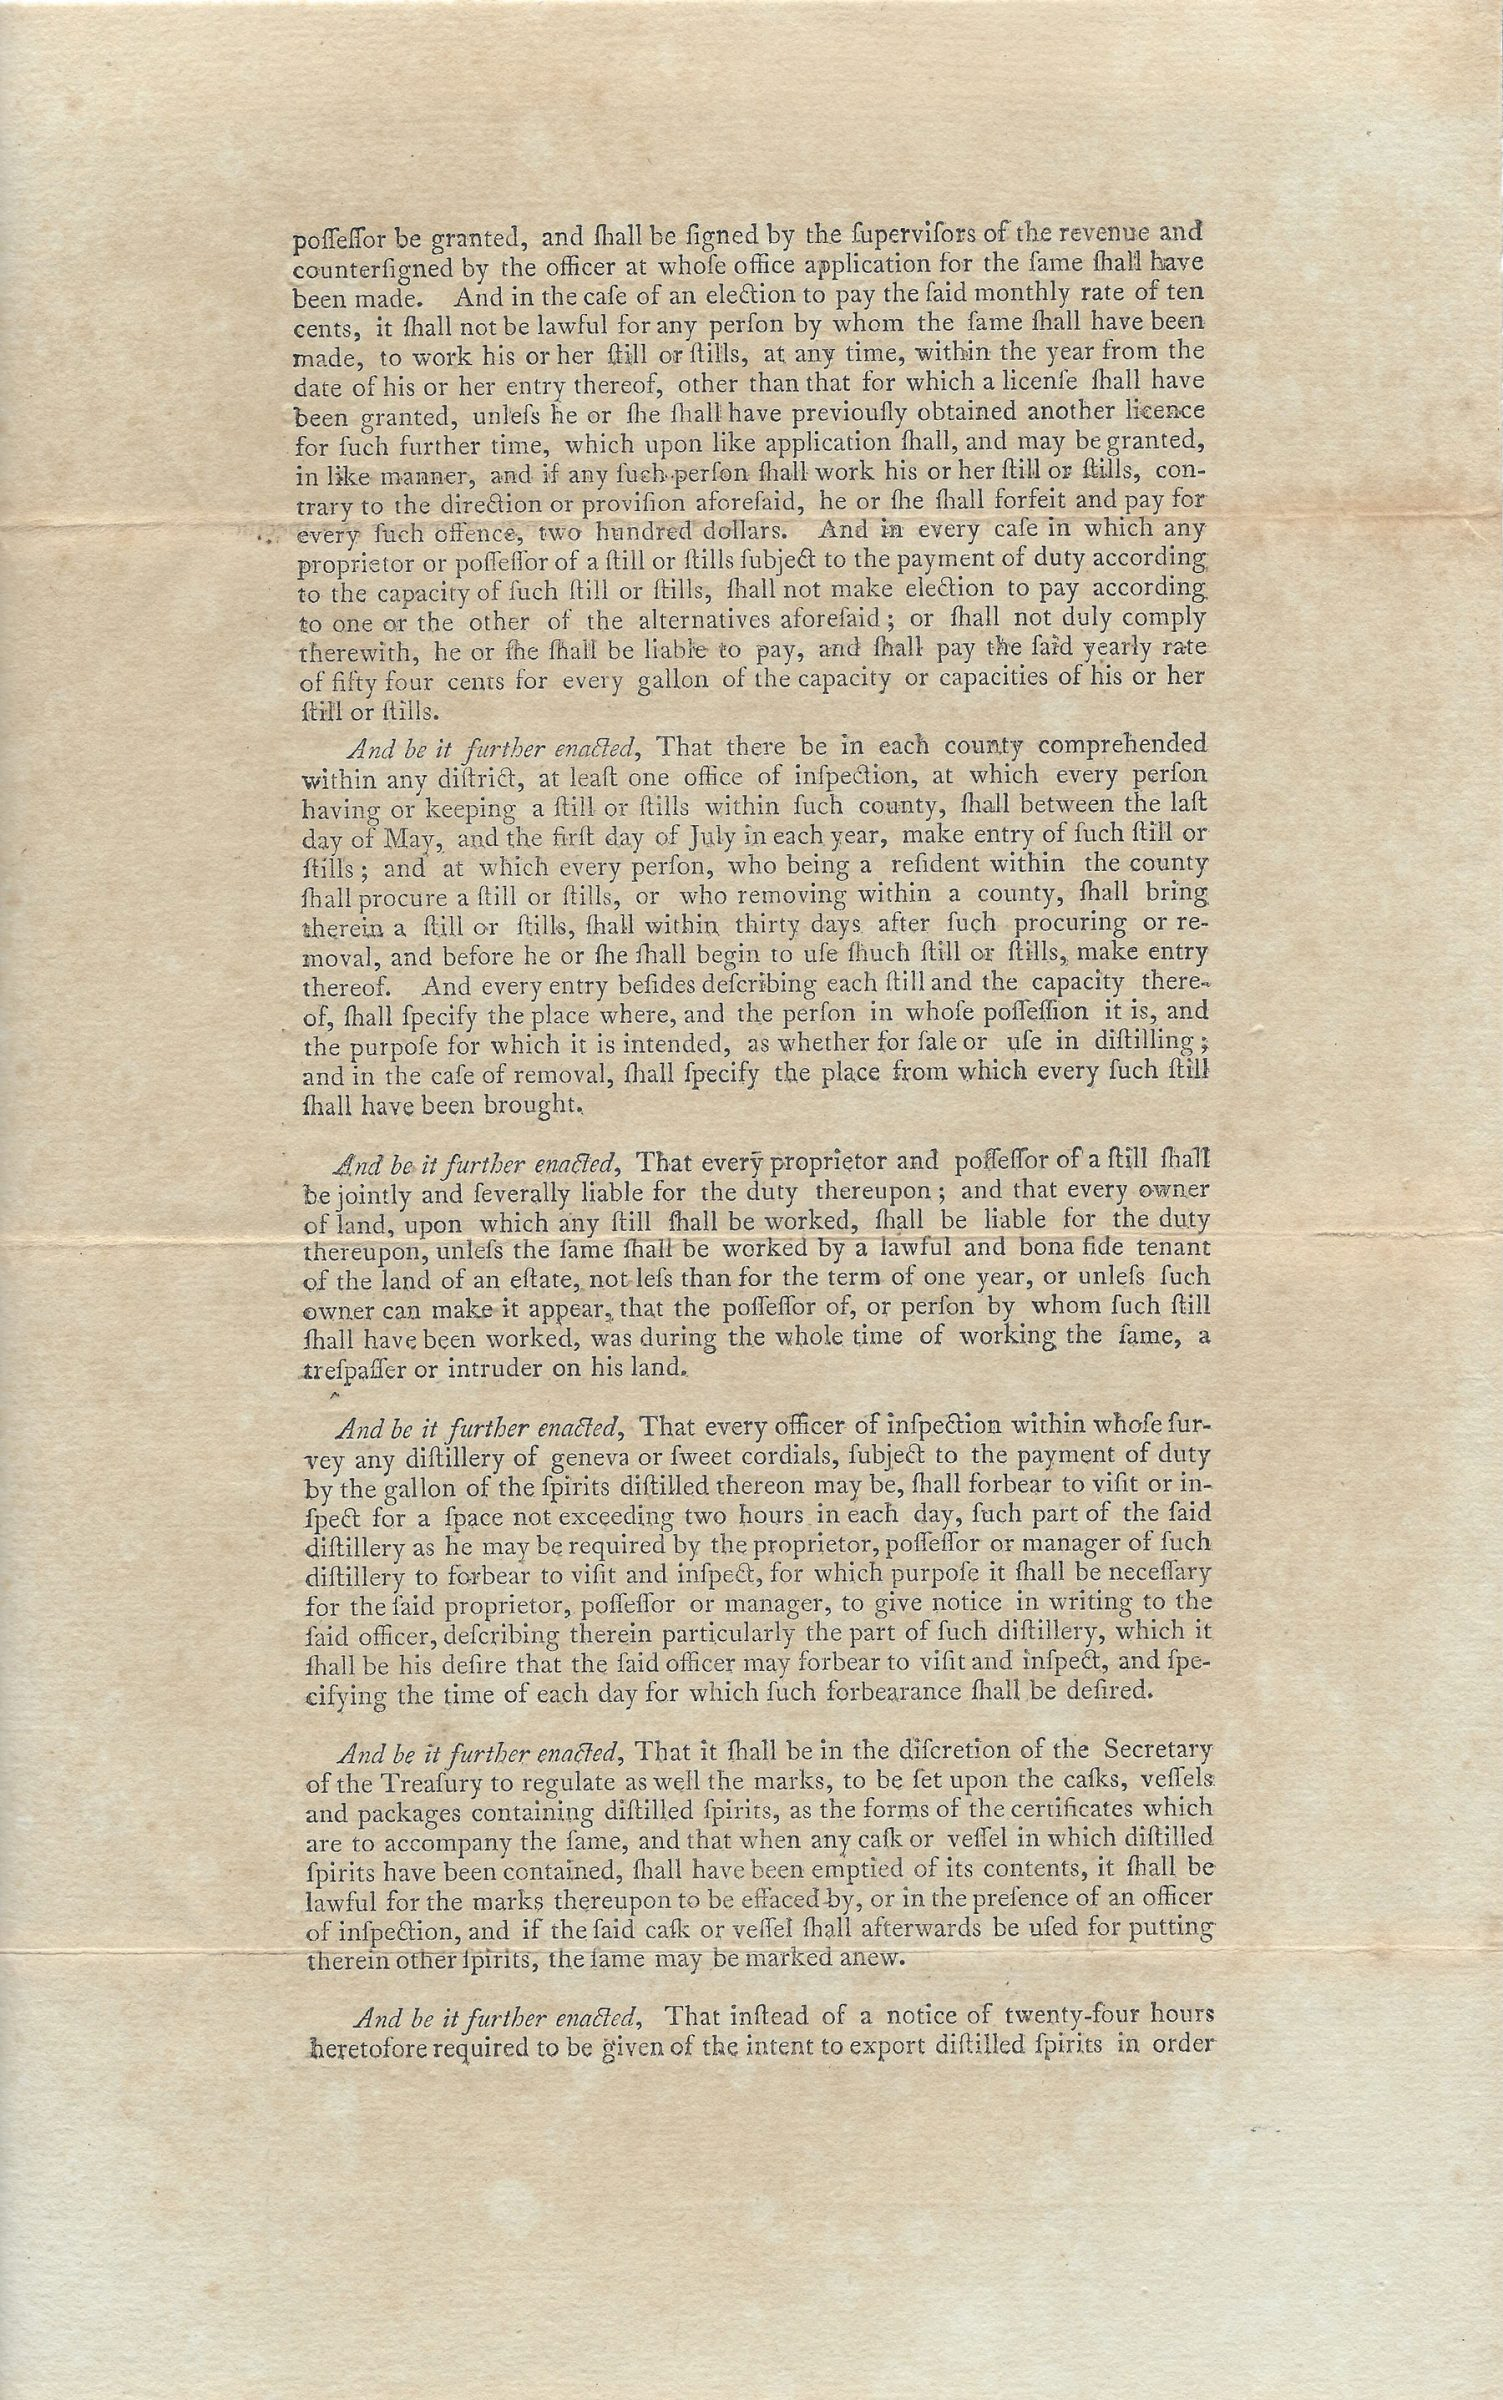 The Act of Congress That Helped Bring on the Whiskey Rebellion, Signed by Thomas Jefferson as Secretary of State